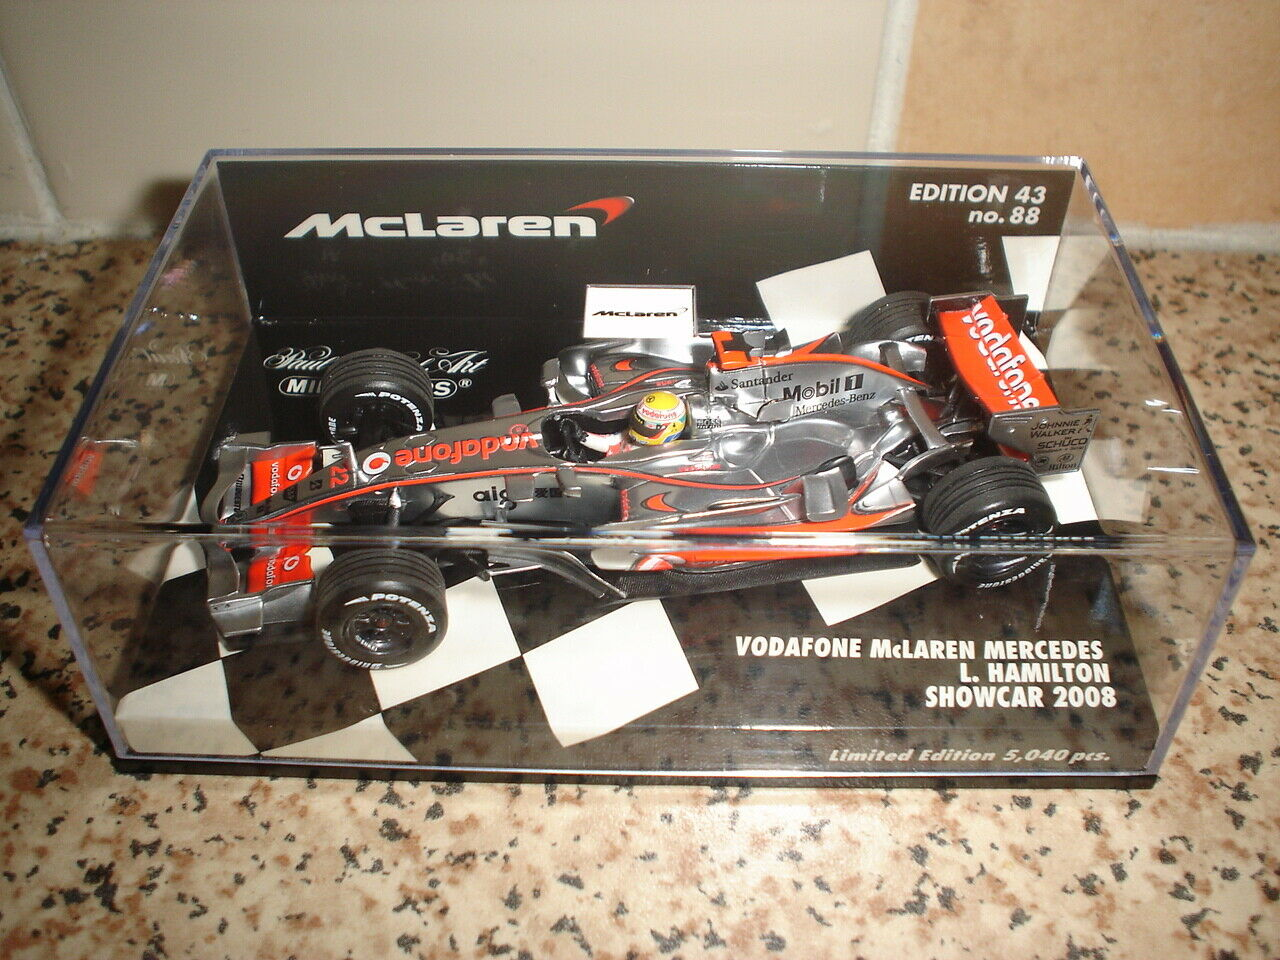 McLaren F1 L. Hamilton 2008 show car-Ltd. édition -1 43 - RARE & COLLECTION